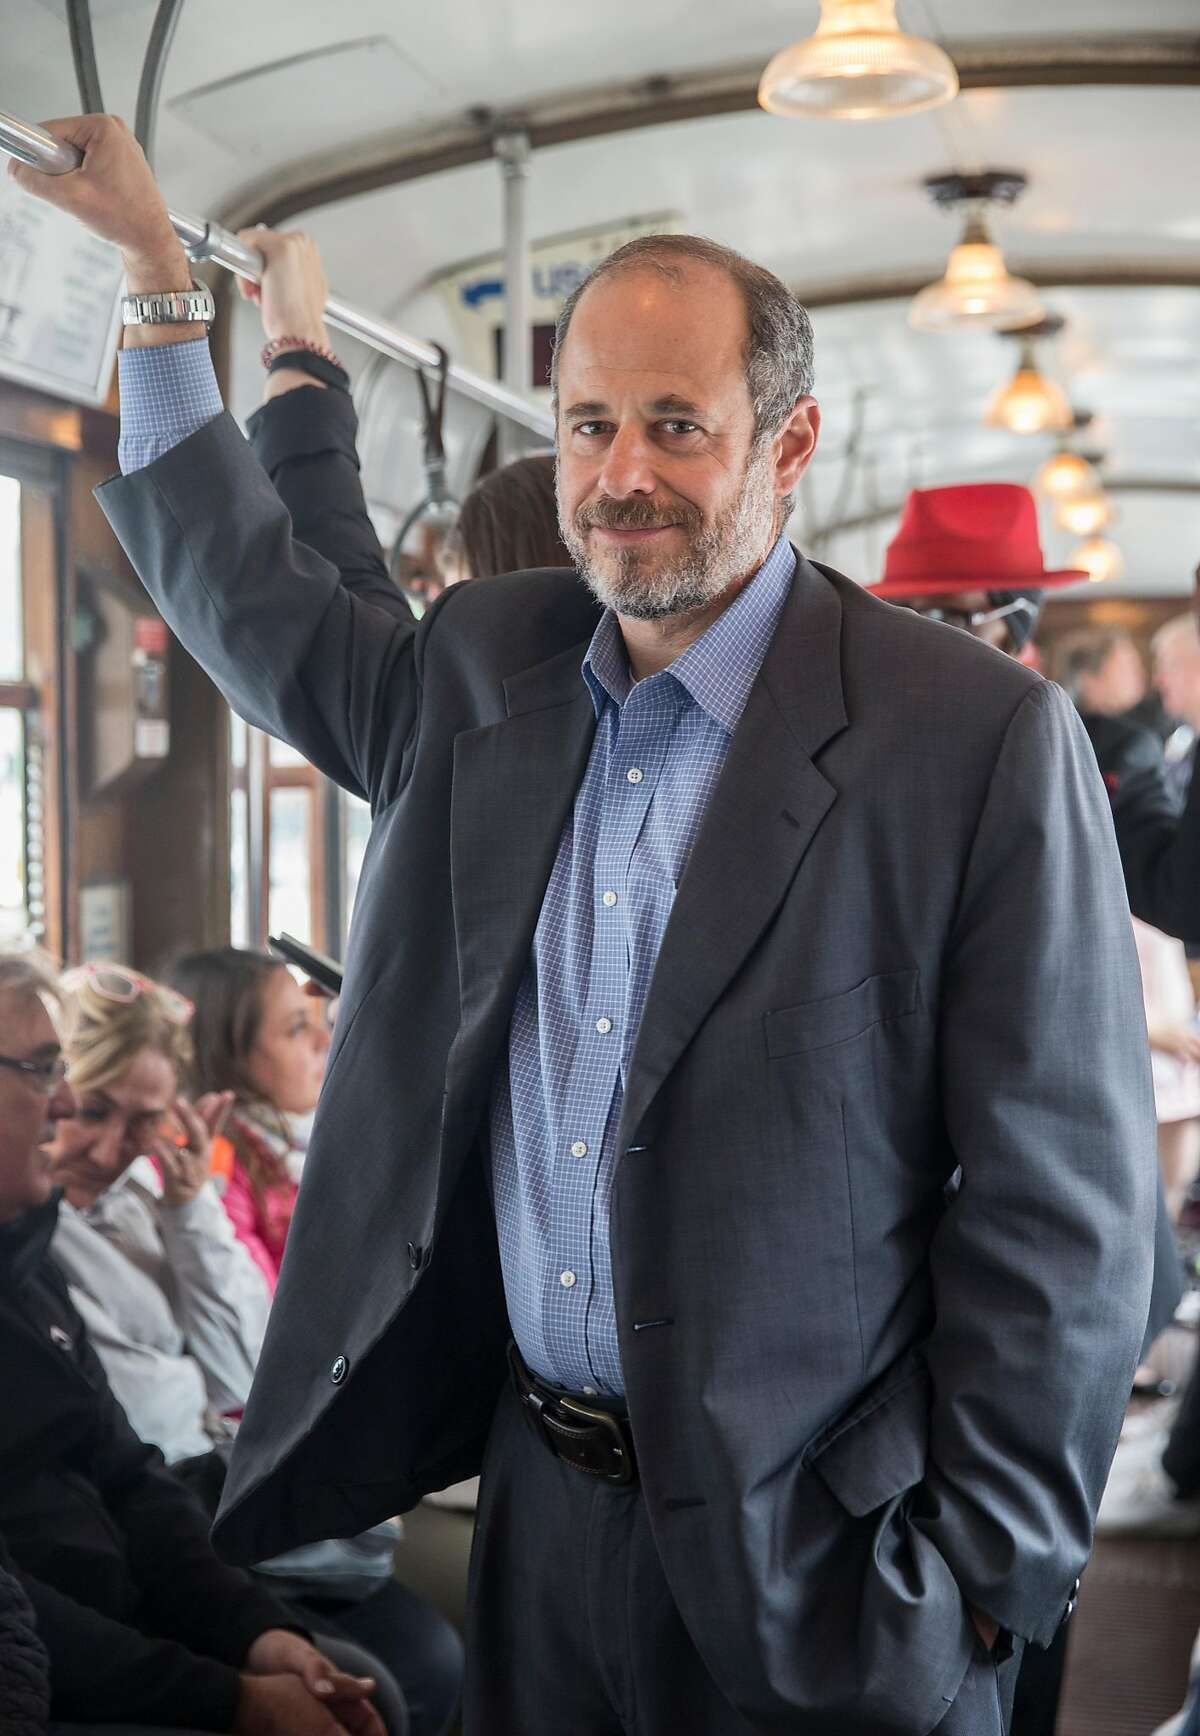 SFMTA Transit Chief Ed Reiskin poses for a portrait while riding a streetcar up Market Street from the SFMTA headquarters in San Francisco, Calif. Thursday, Aug. 23, 2018.